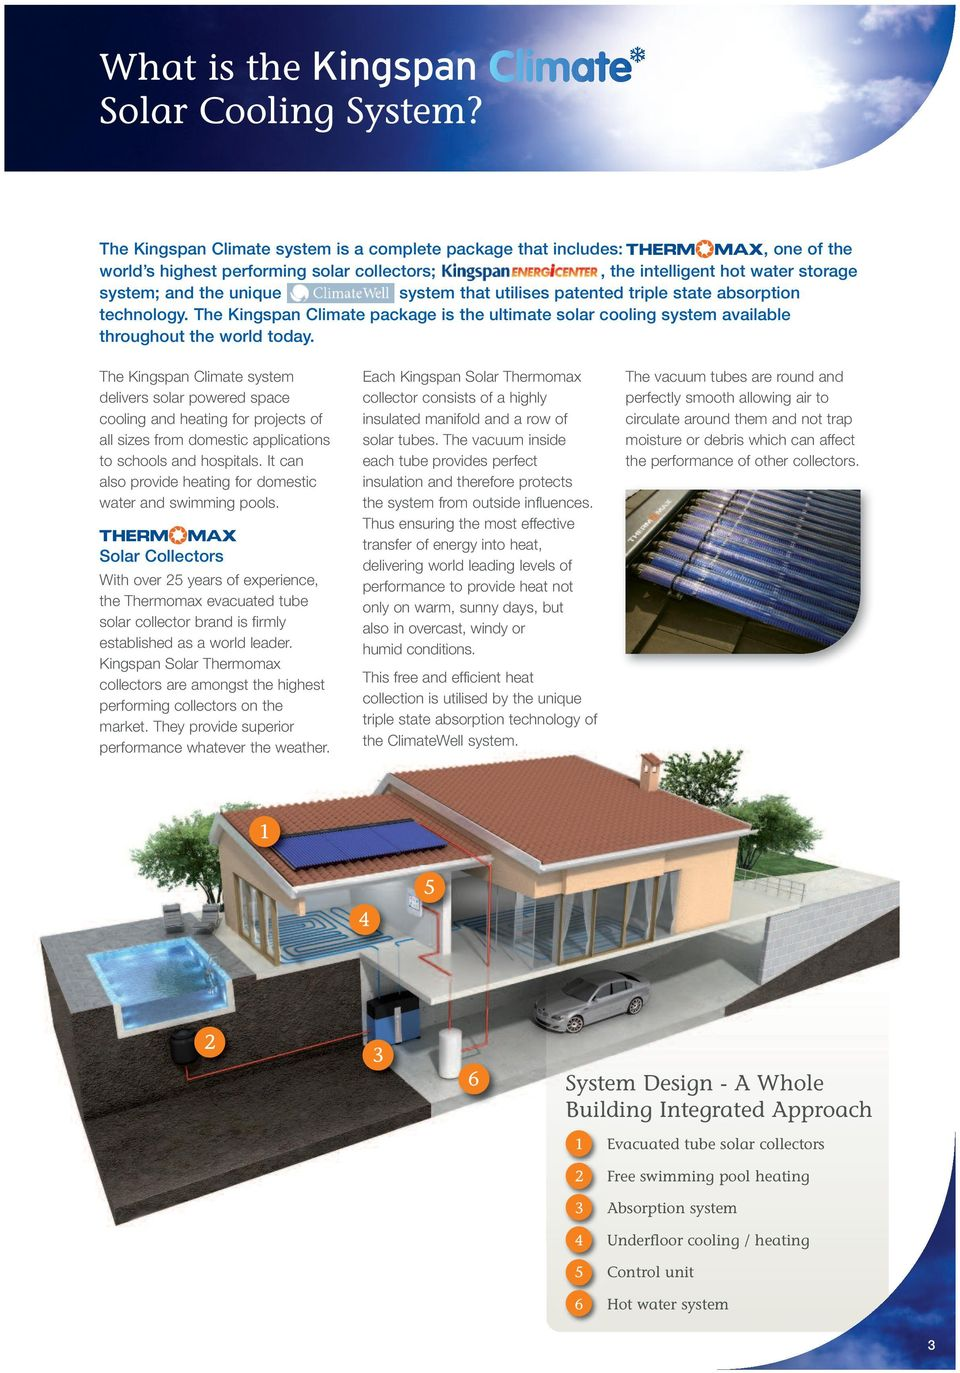 utilises patented triple state absorption technology. The Kingspan Climate package is the ultimate solar cooling system available throughout the world today.